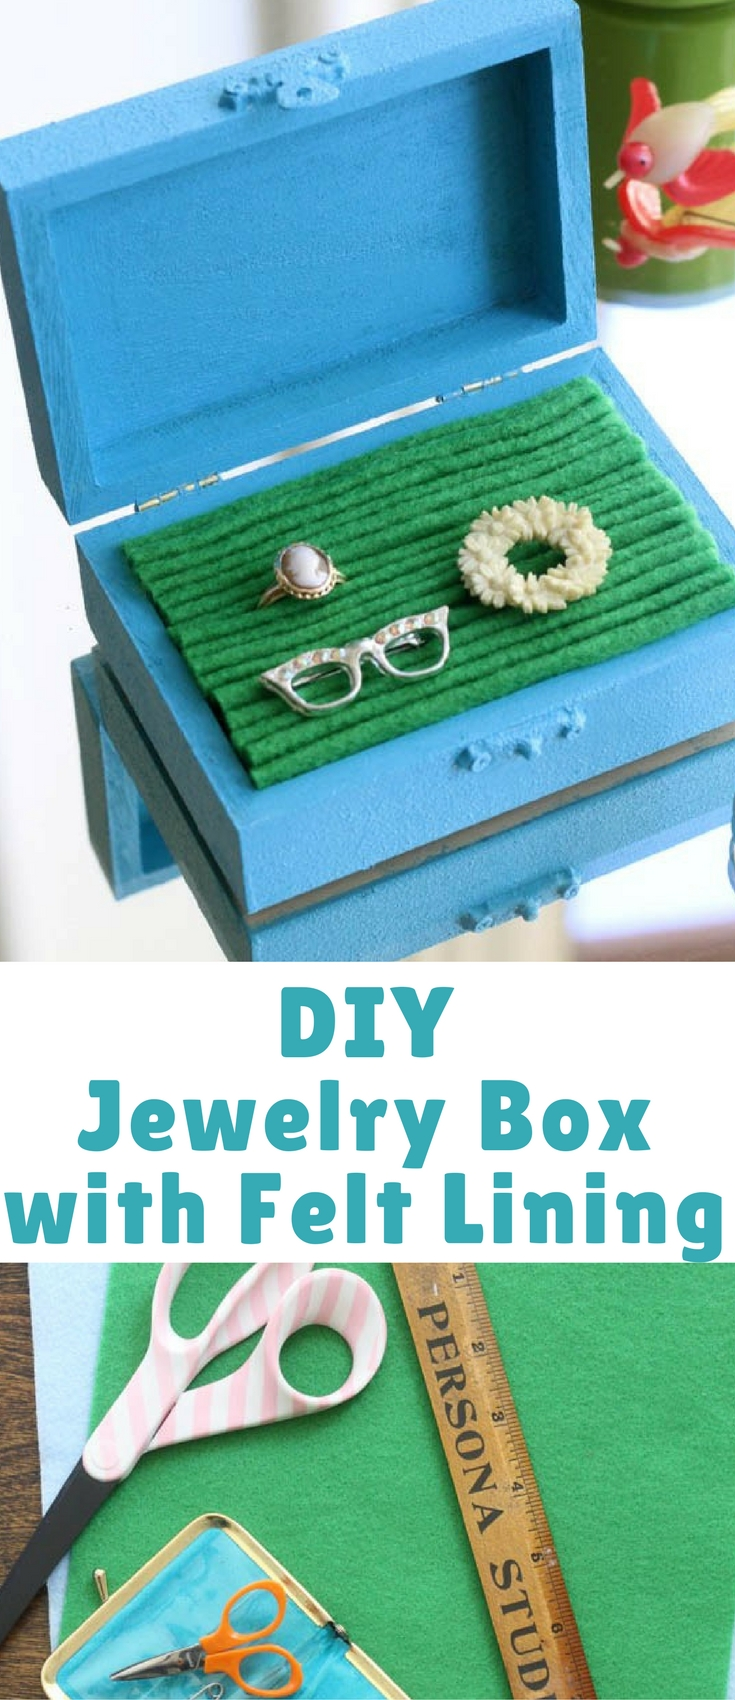 DIY Jewelry Box with Felt Lining - Blogger Bests